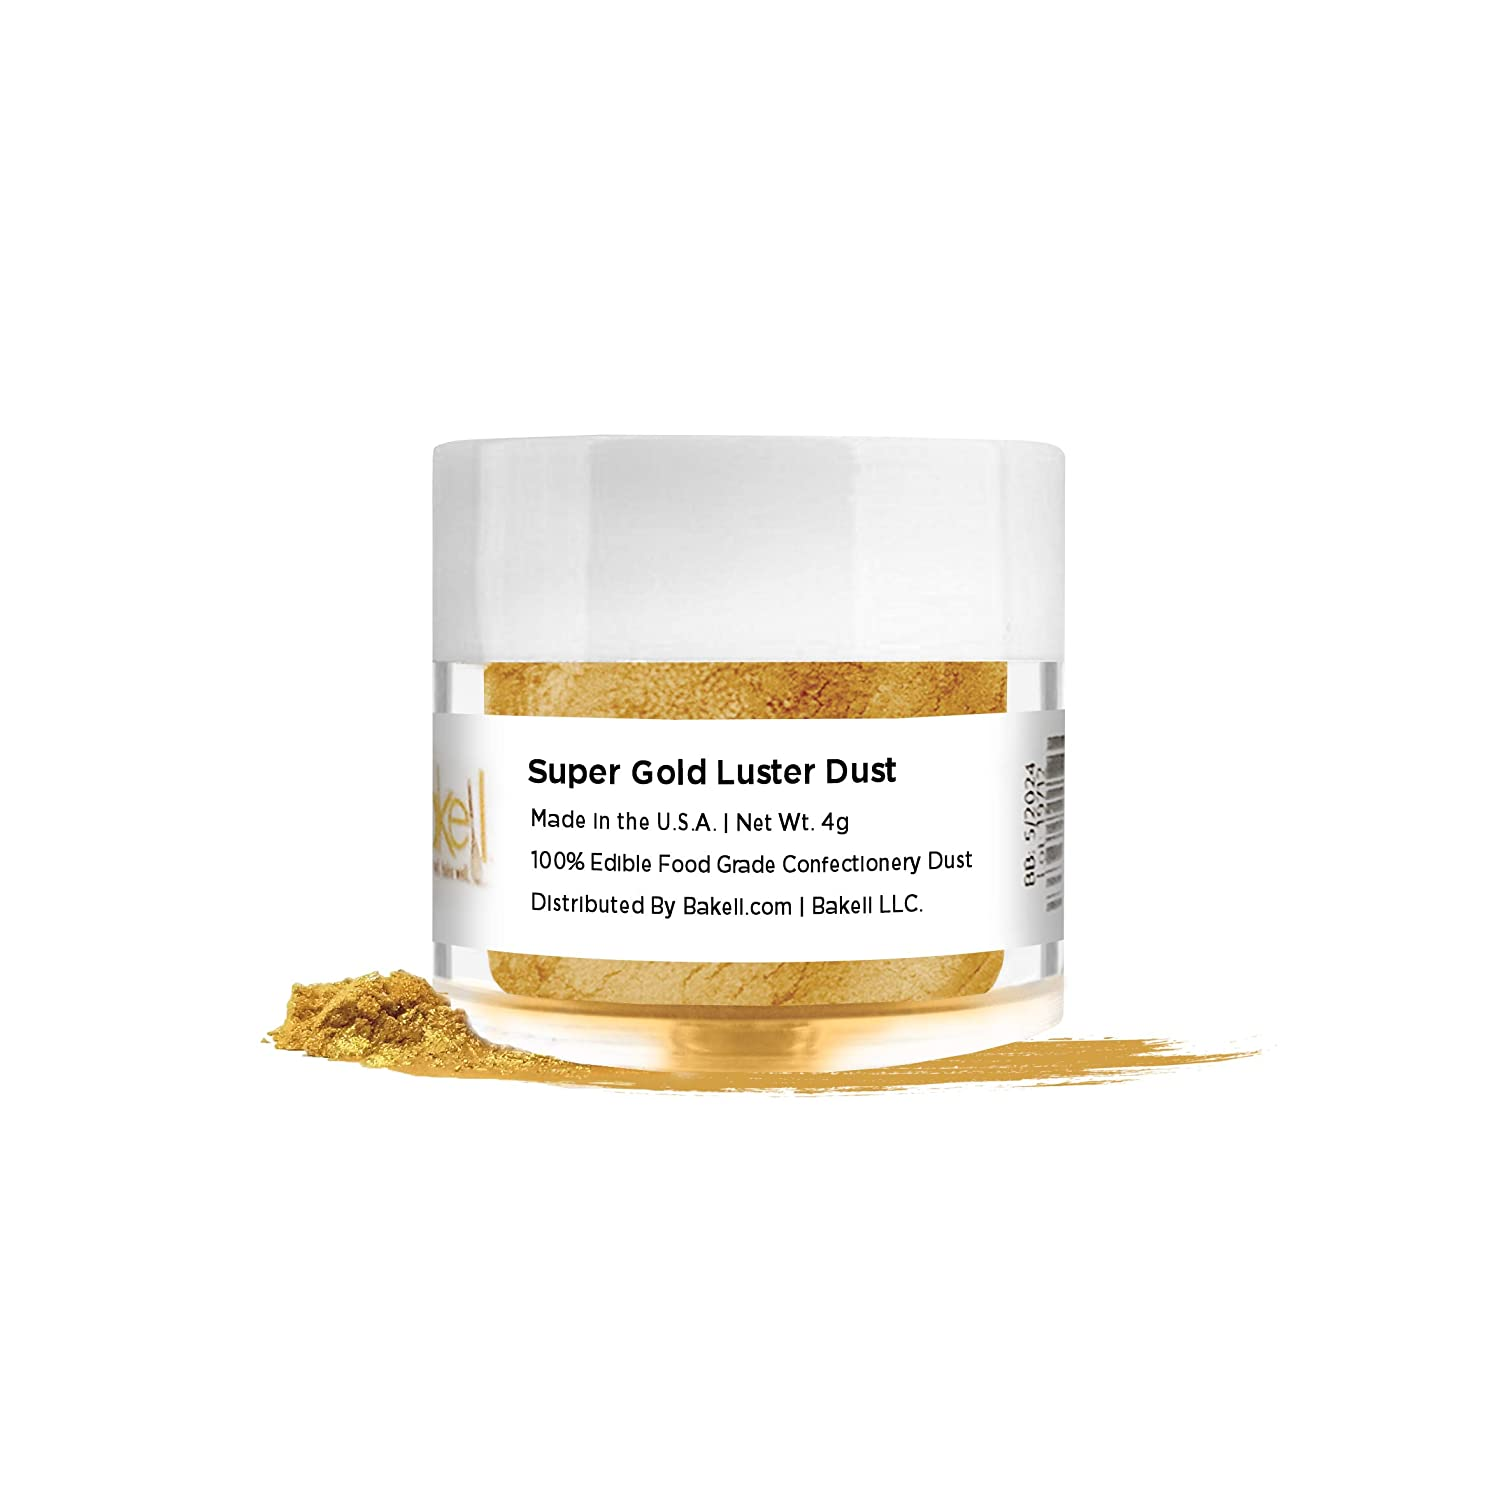 BAKELL Super Intense Gold Edible Luster Dust & Paint, 4 Gram | LUSTER DUST Edible Powder | KOSHER Certified Paint, Powder & Dust | 100% Edible & Food Grade| Cakes, Cupcakes, Drinks Vegan Paint & Dust